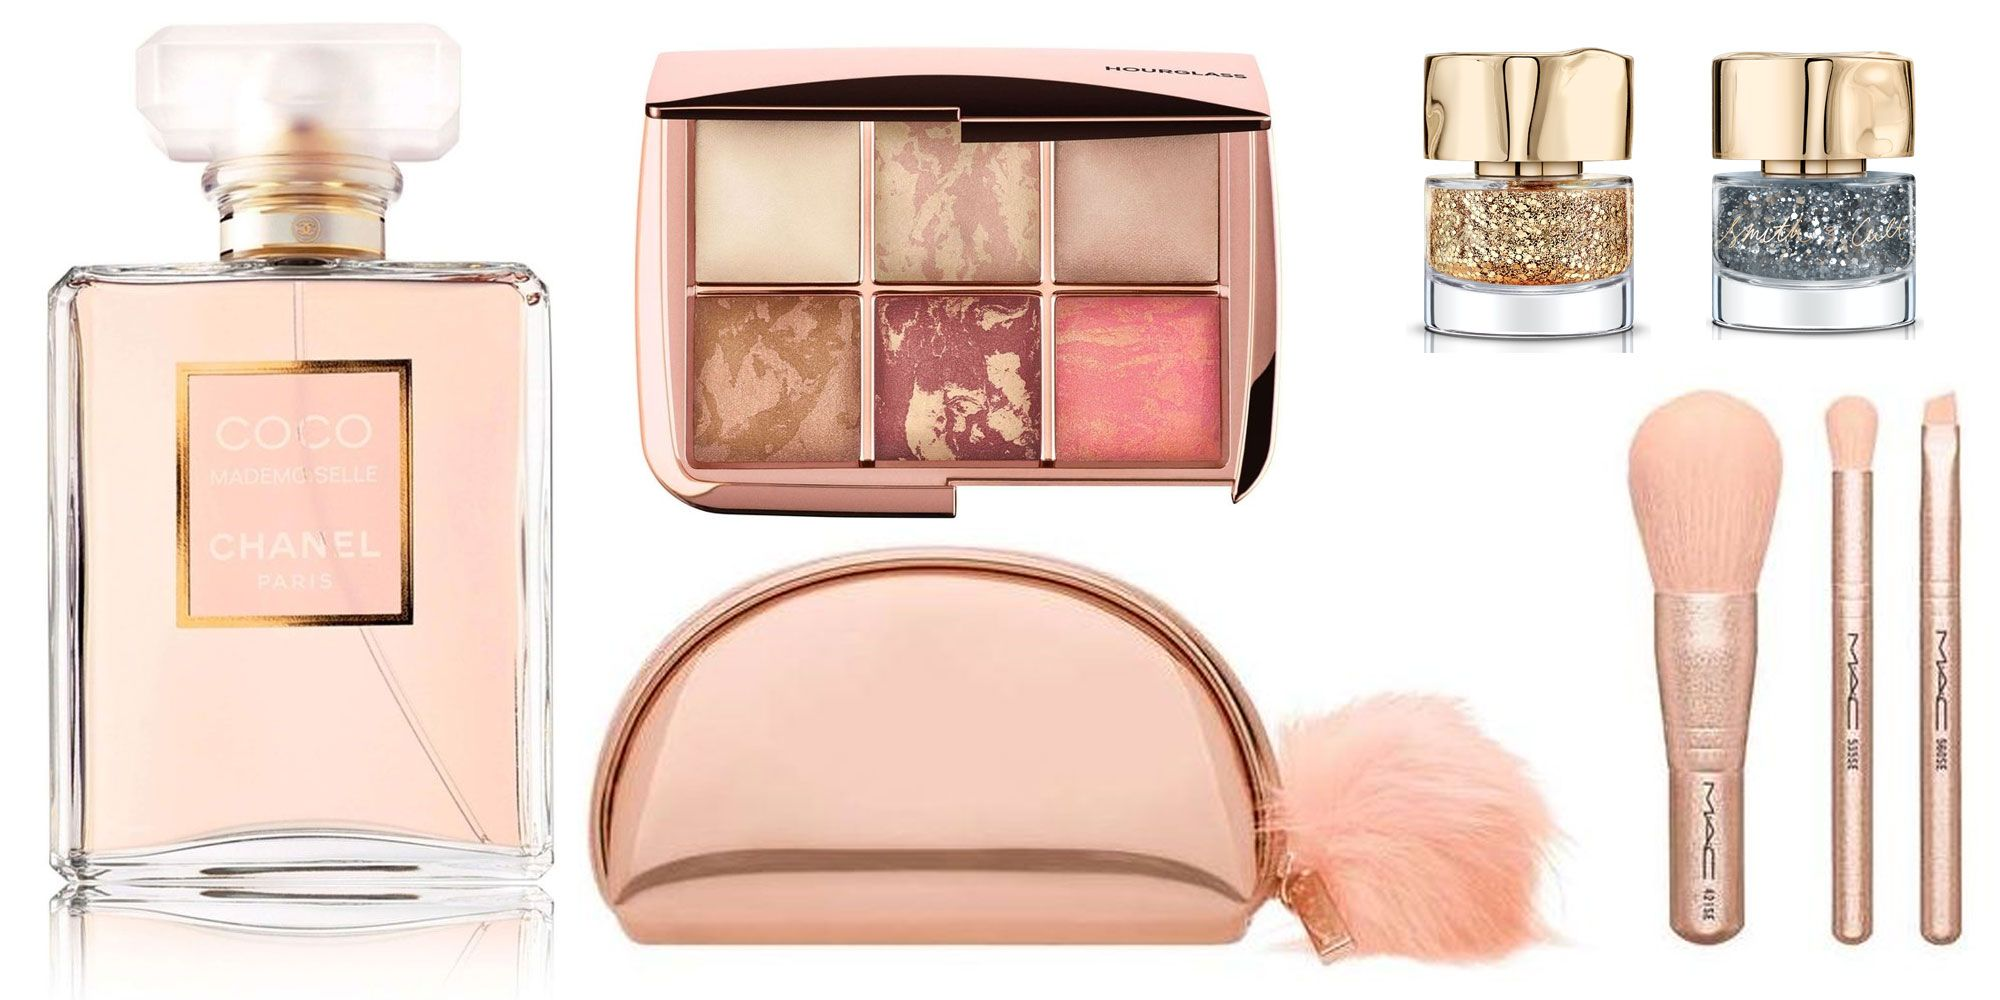 18 Best Beauty Gifts in 2018   Makeup and Perfume Gift Ideas for Her